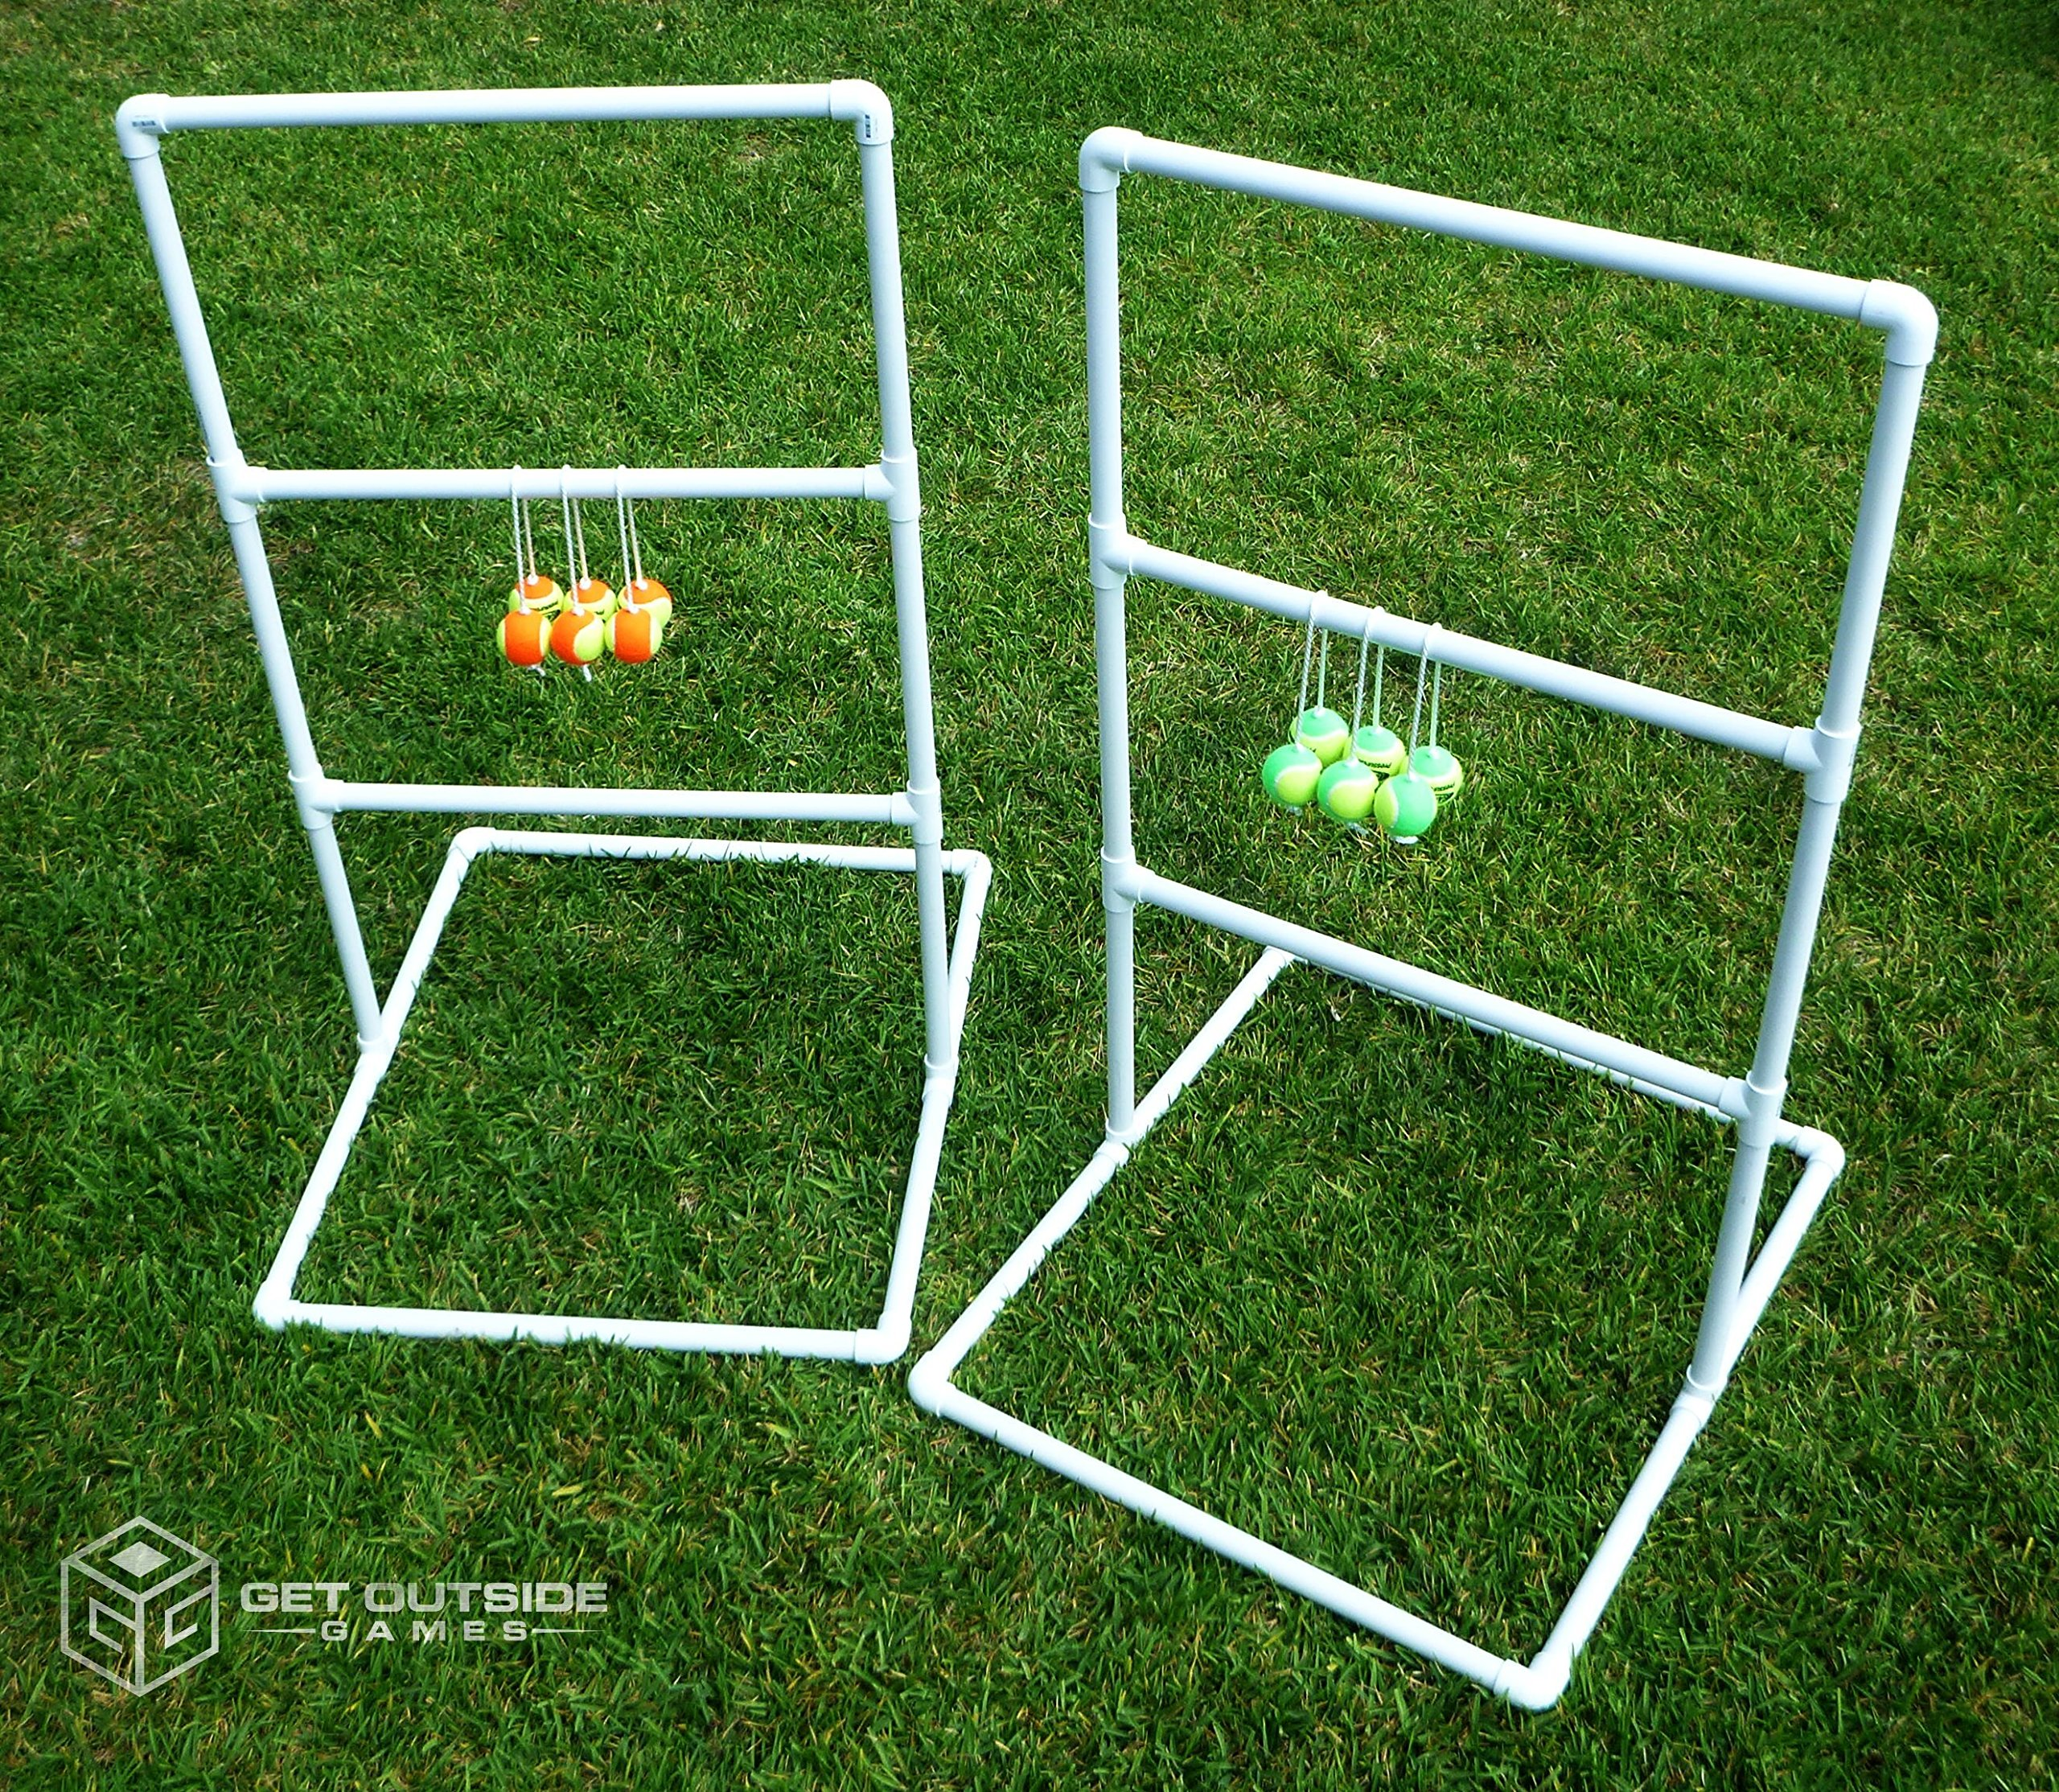 Get Outside Games Texas Toss - 5 ft Tall Ladder Ball Toss / Ladder Golf Game (Blue & Green Ball Kit)